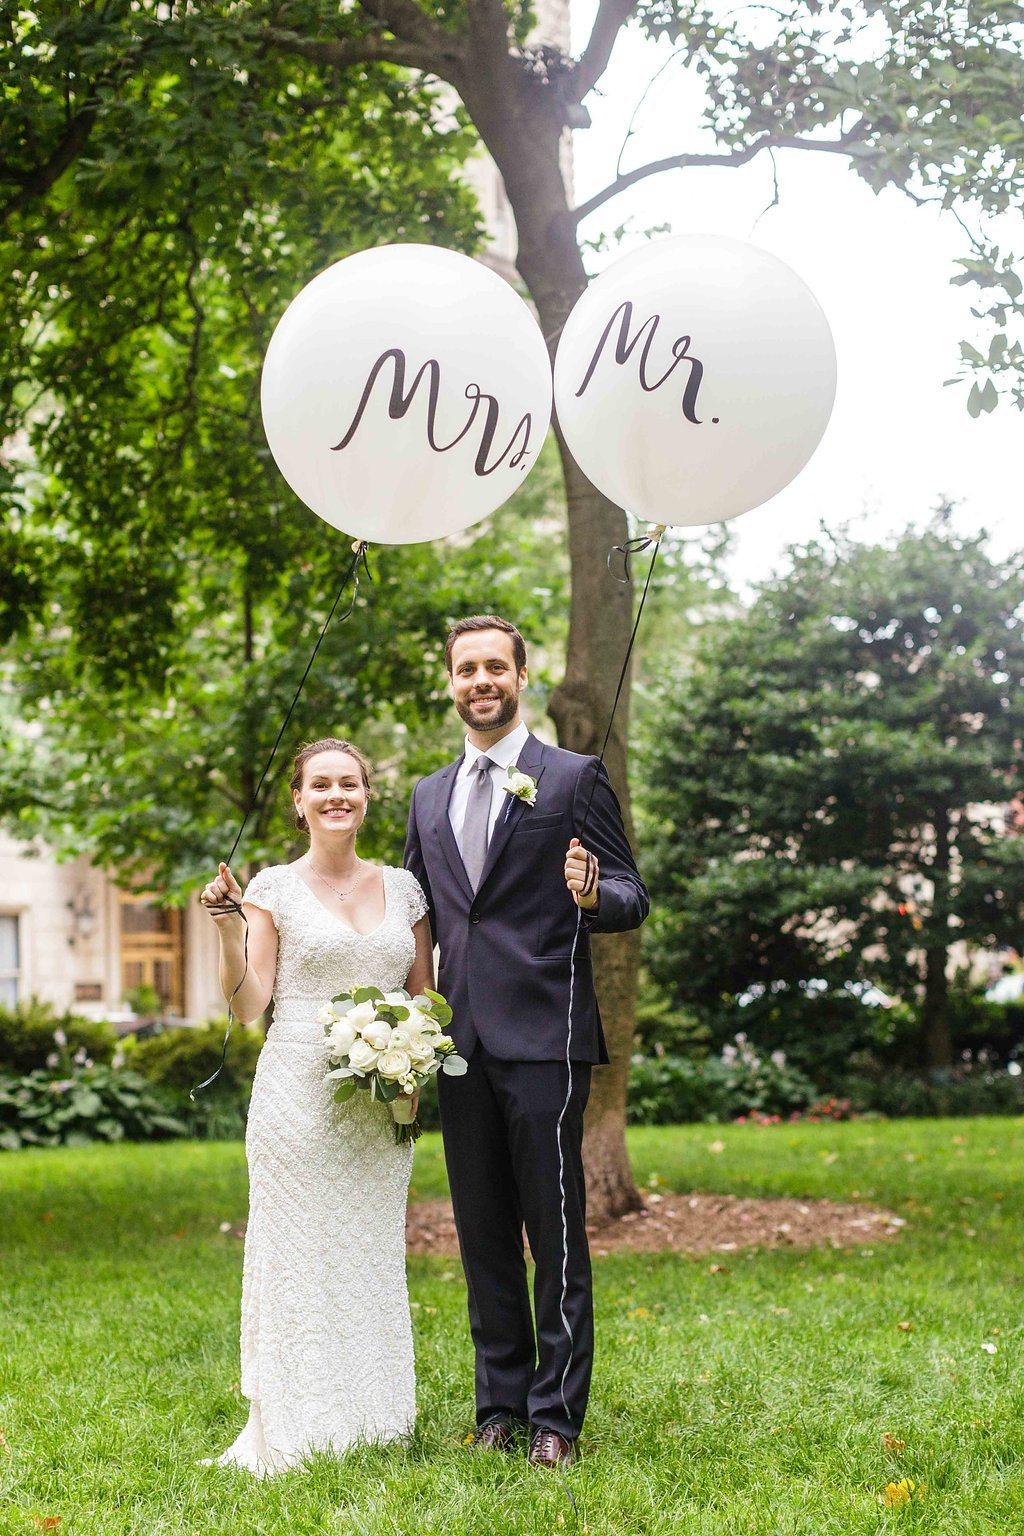 12 Philadelphia Wedding Rittenhouse Square Kate Spade Mr and Mrs Balloons .jpg